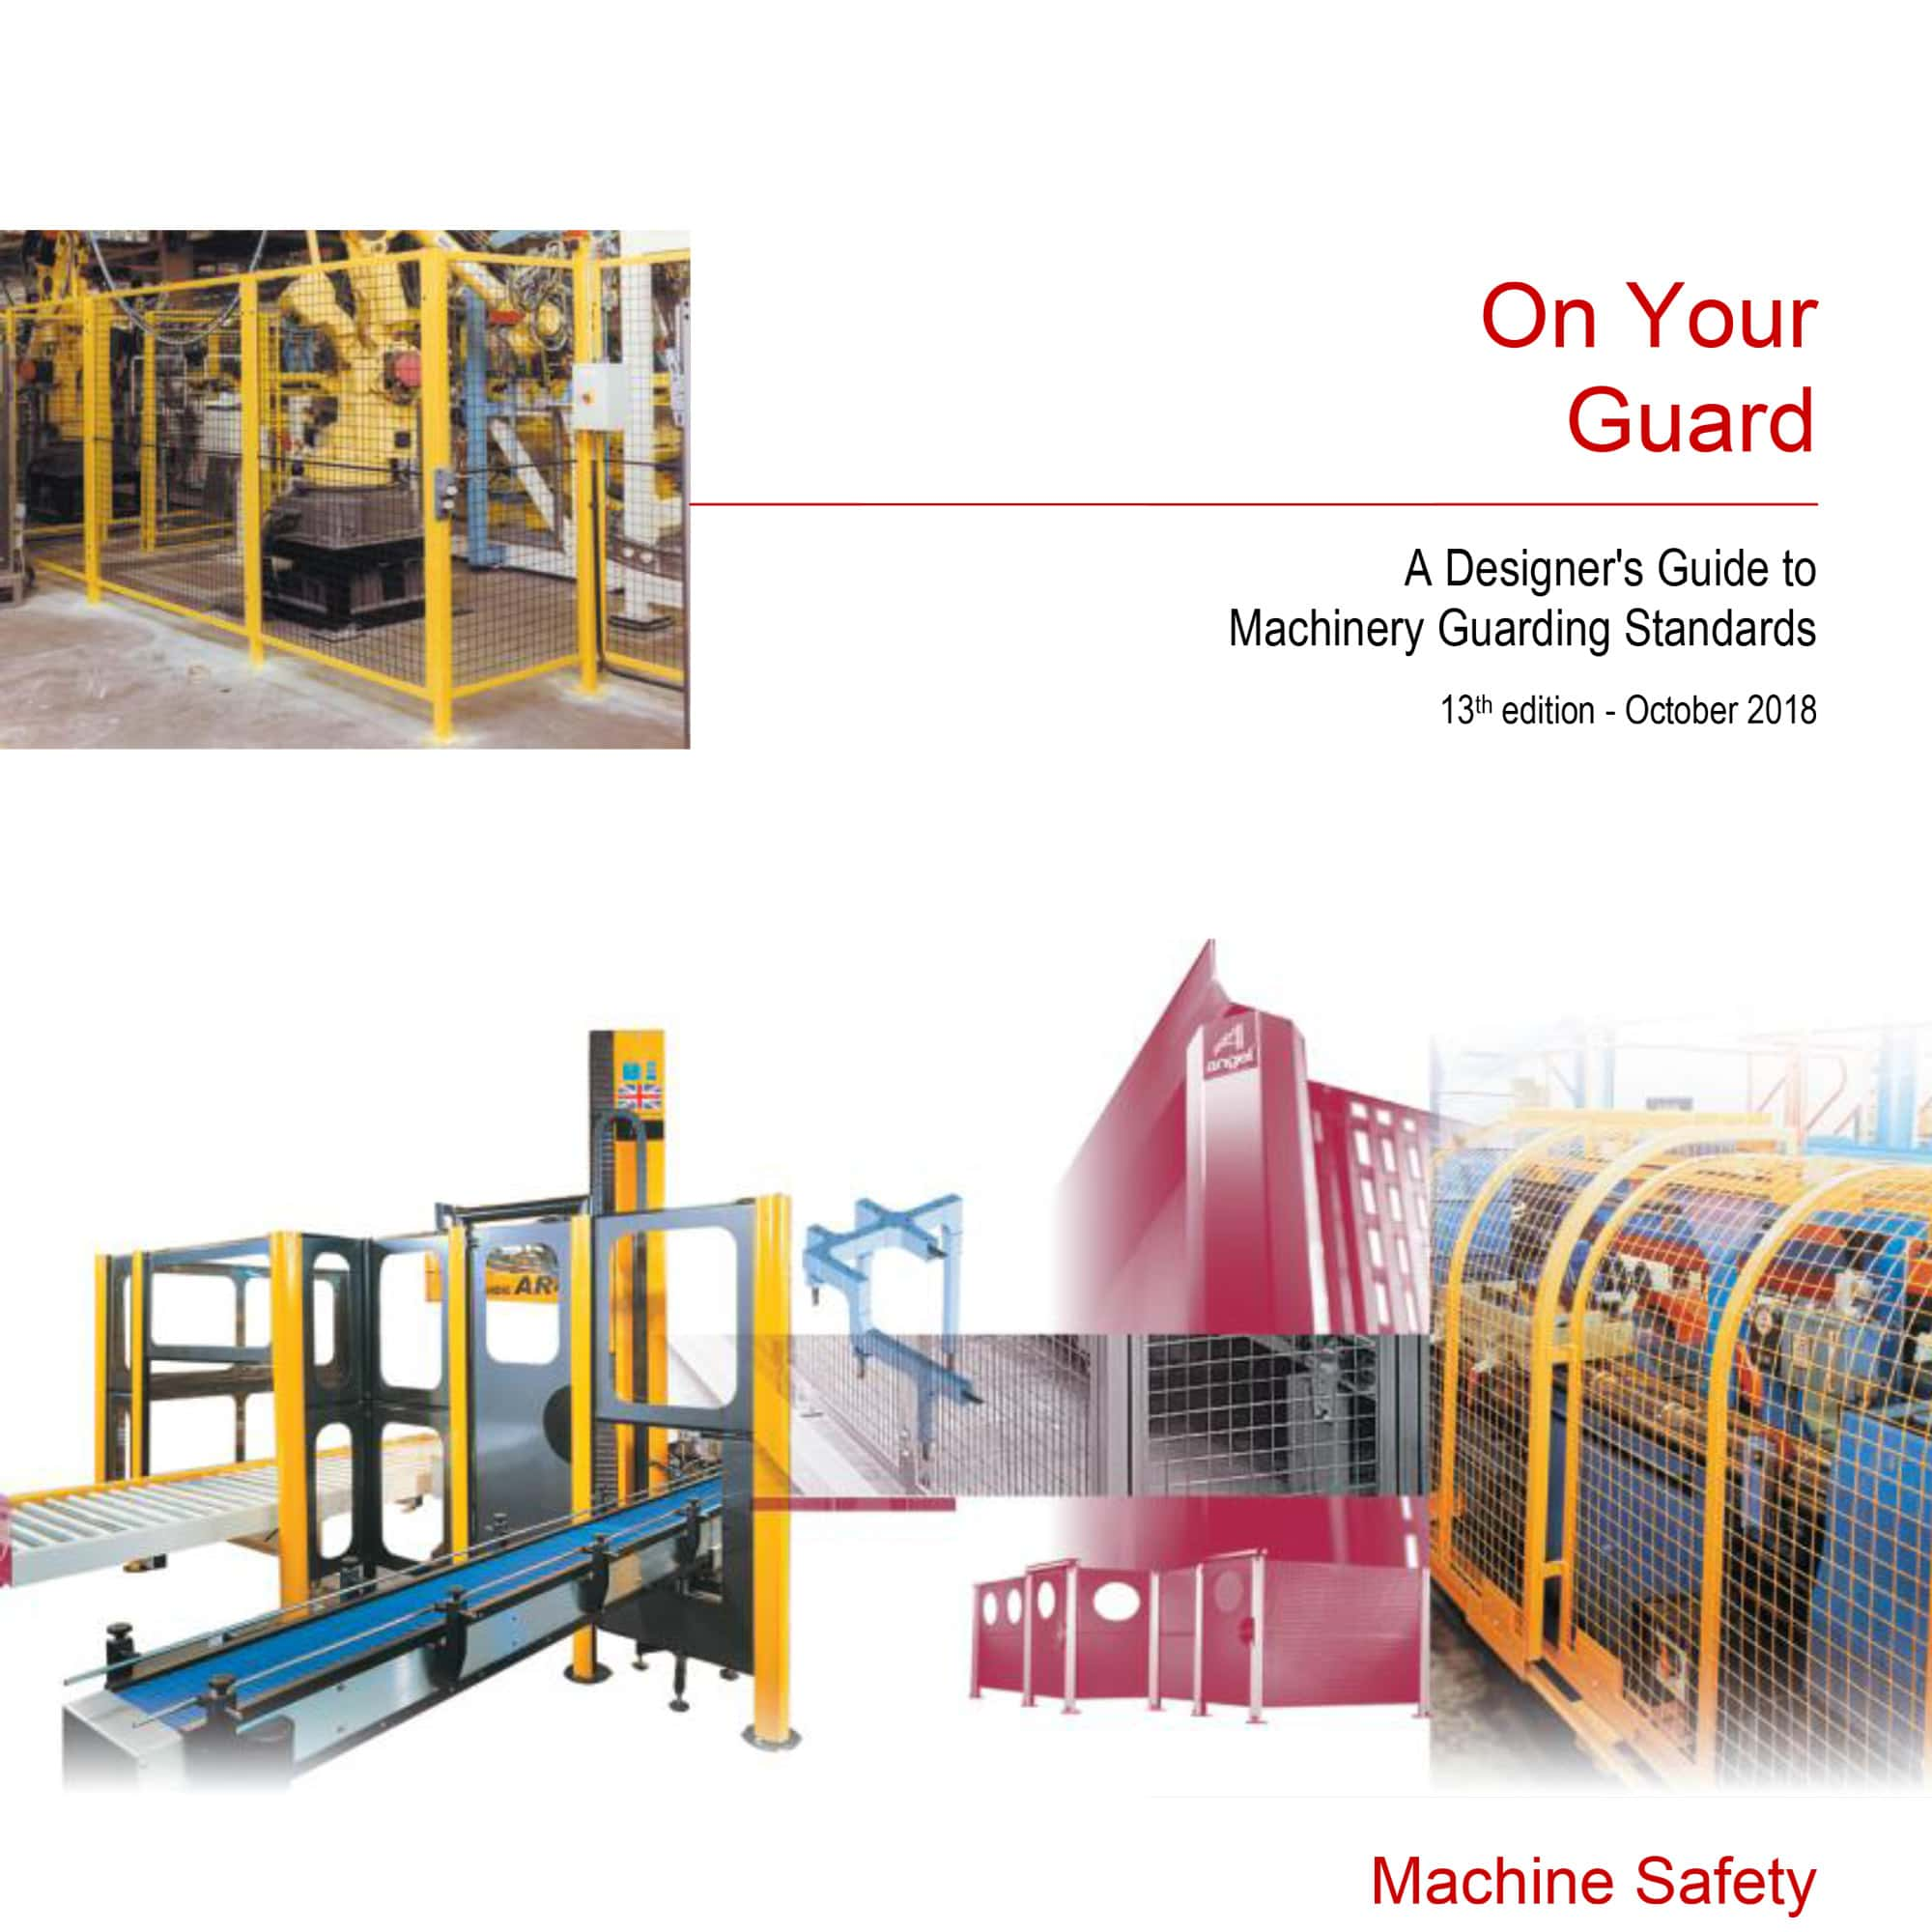 designer's guide to machinery guarding standards